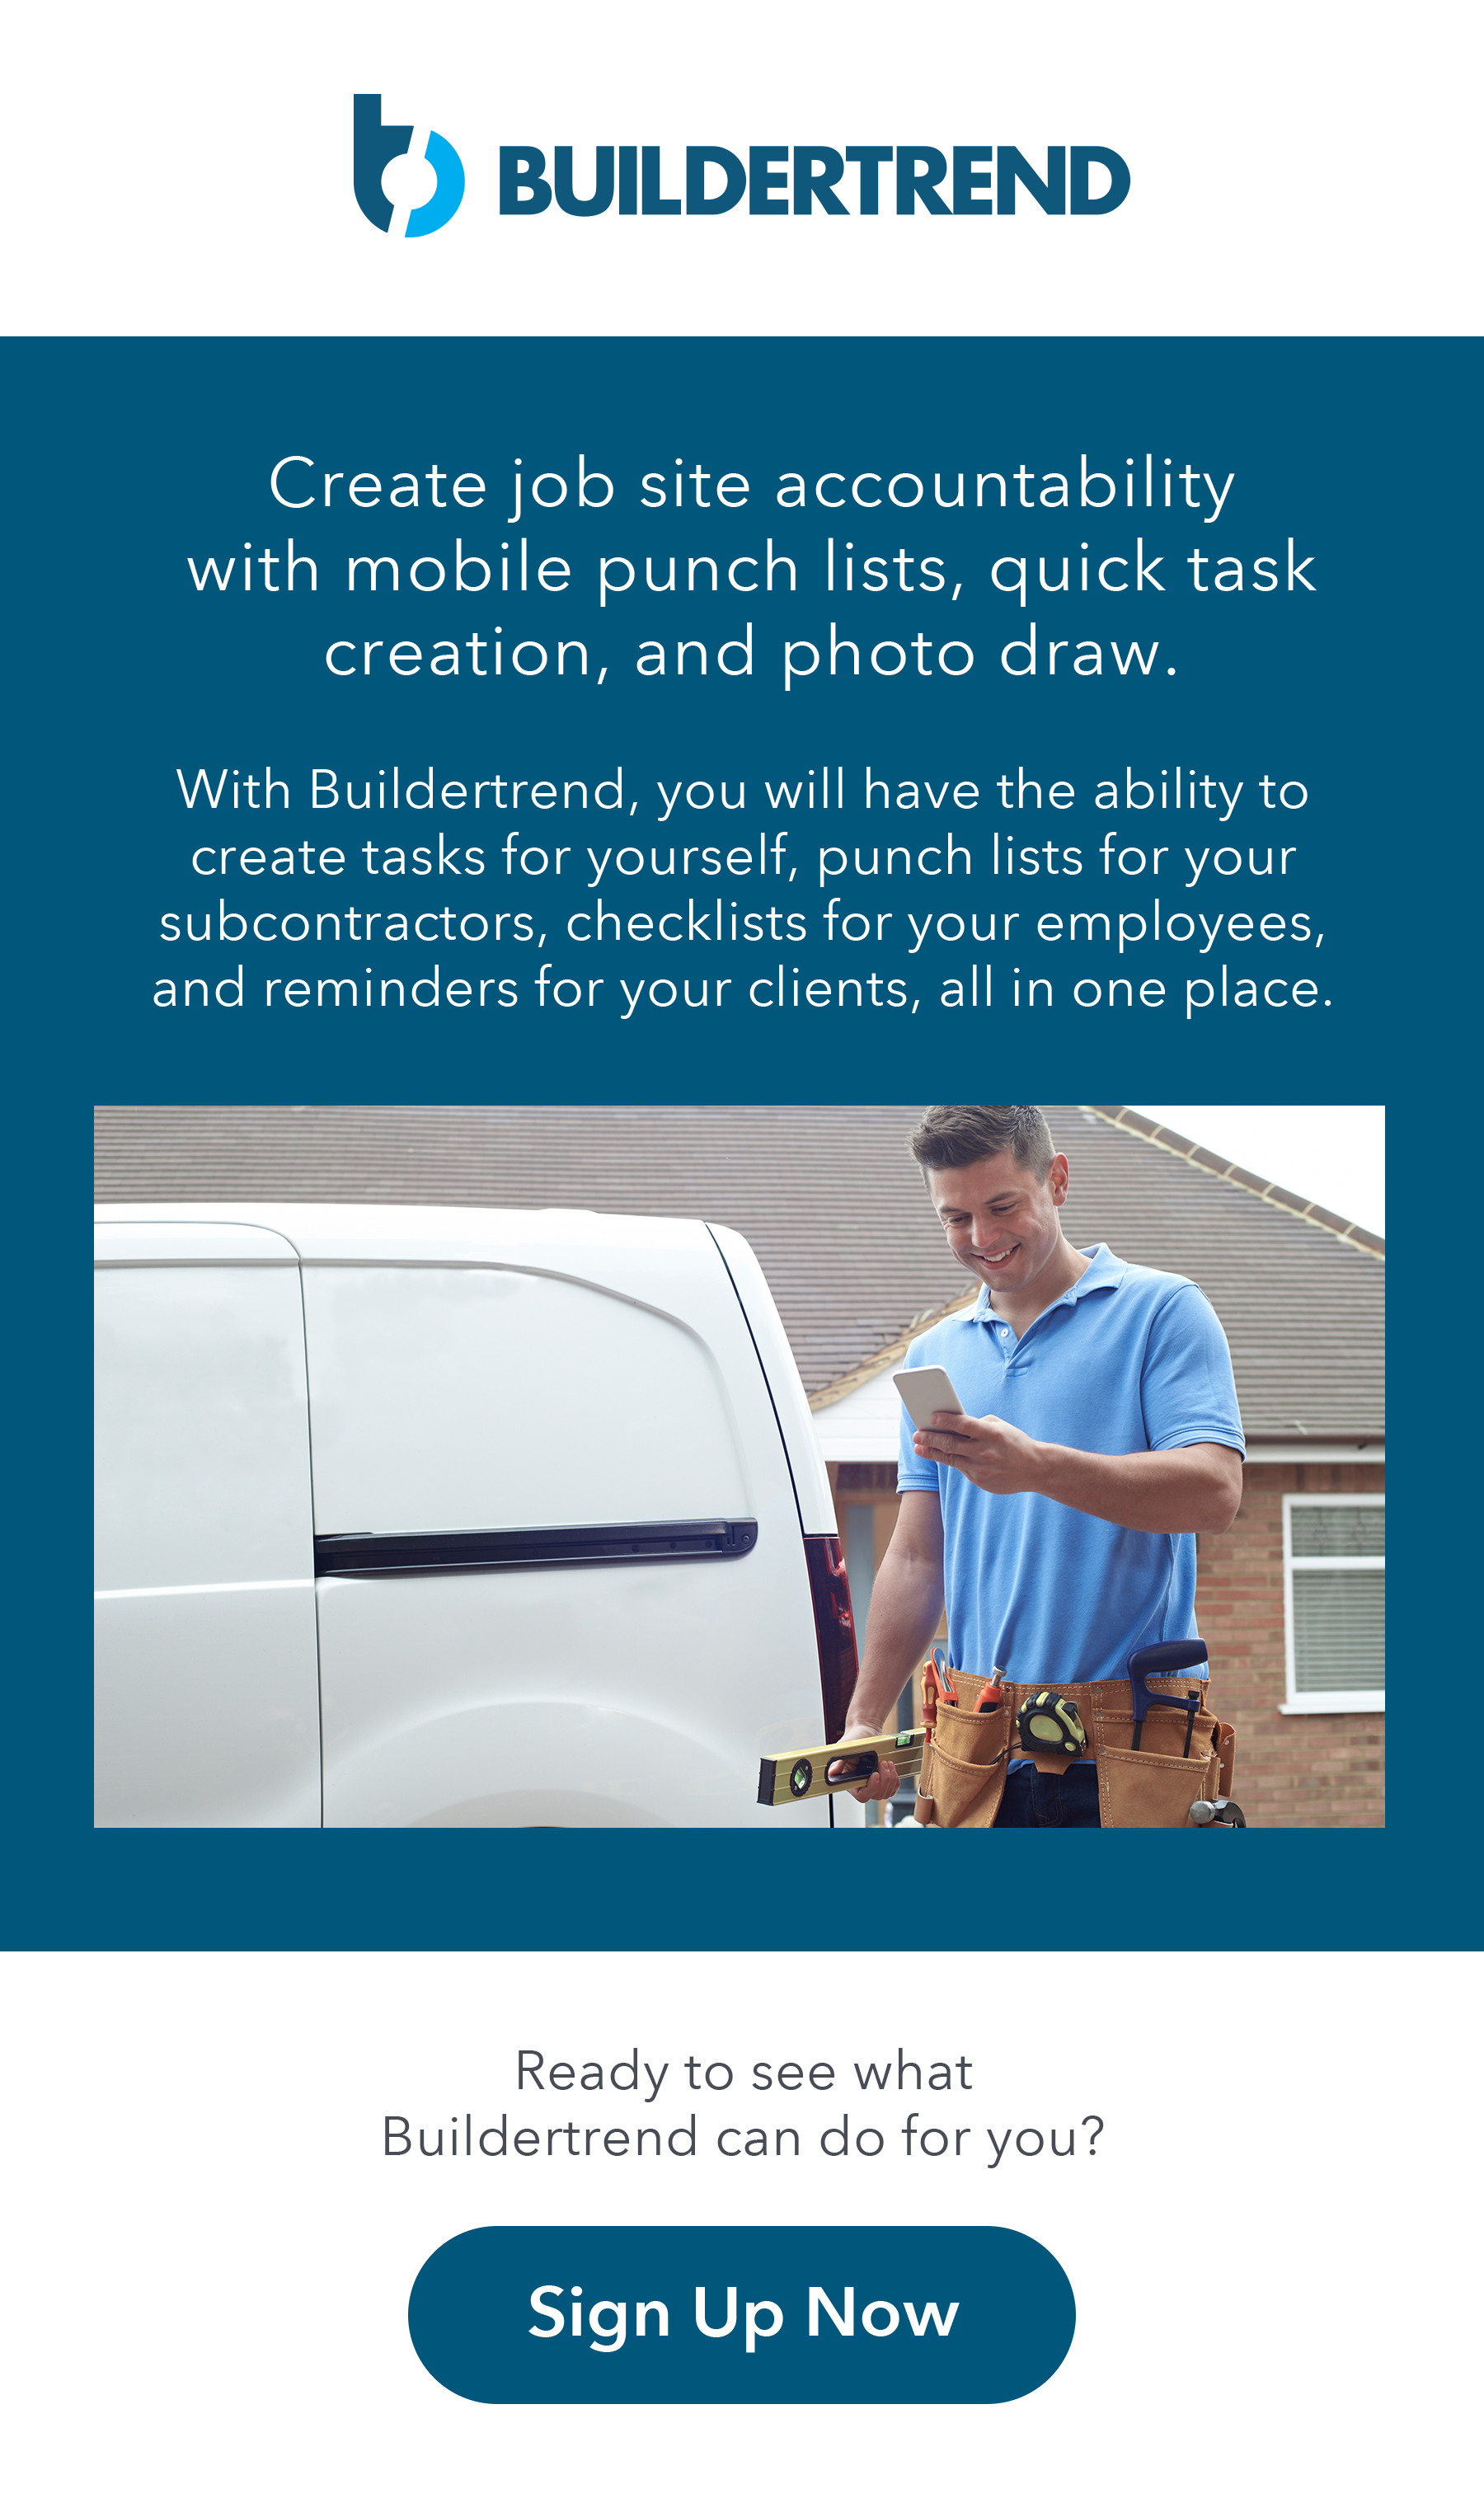 create job site accountability with mobile punch lists, quick task creation, and photo draw - sign up now